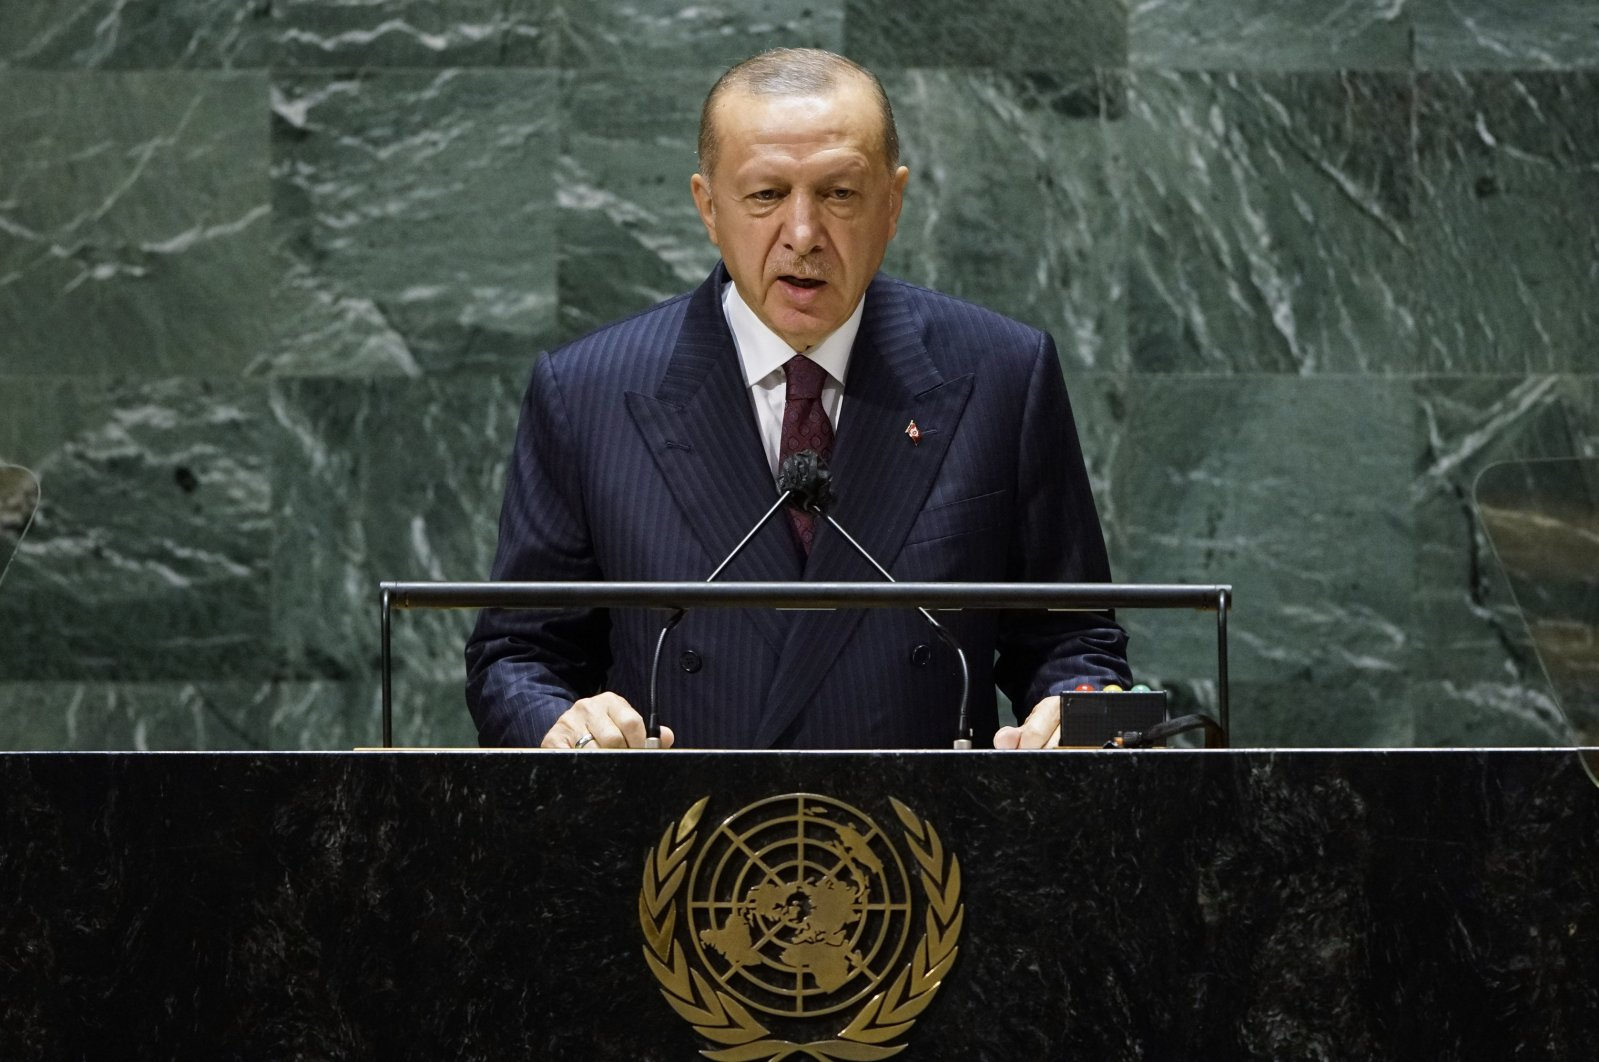 President Recep Tayyip Erdoğan addresses the 76th Session of the U.N. General Assembly at United Nations headquarters in New York, U.S., Sept. 21, 2021.  (AP File Photo)